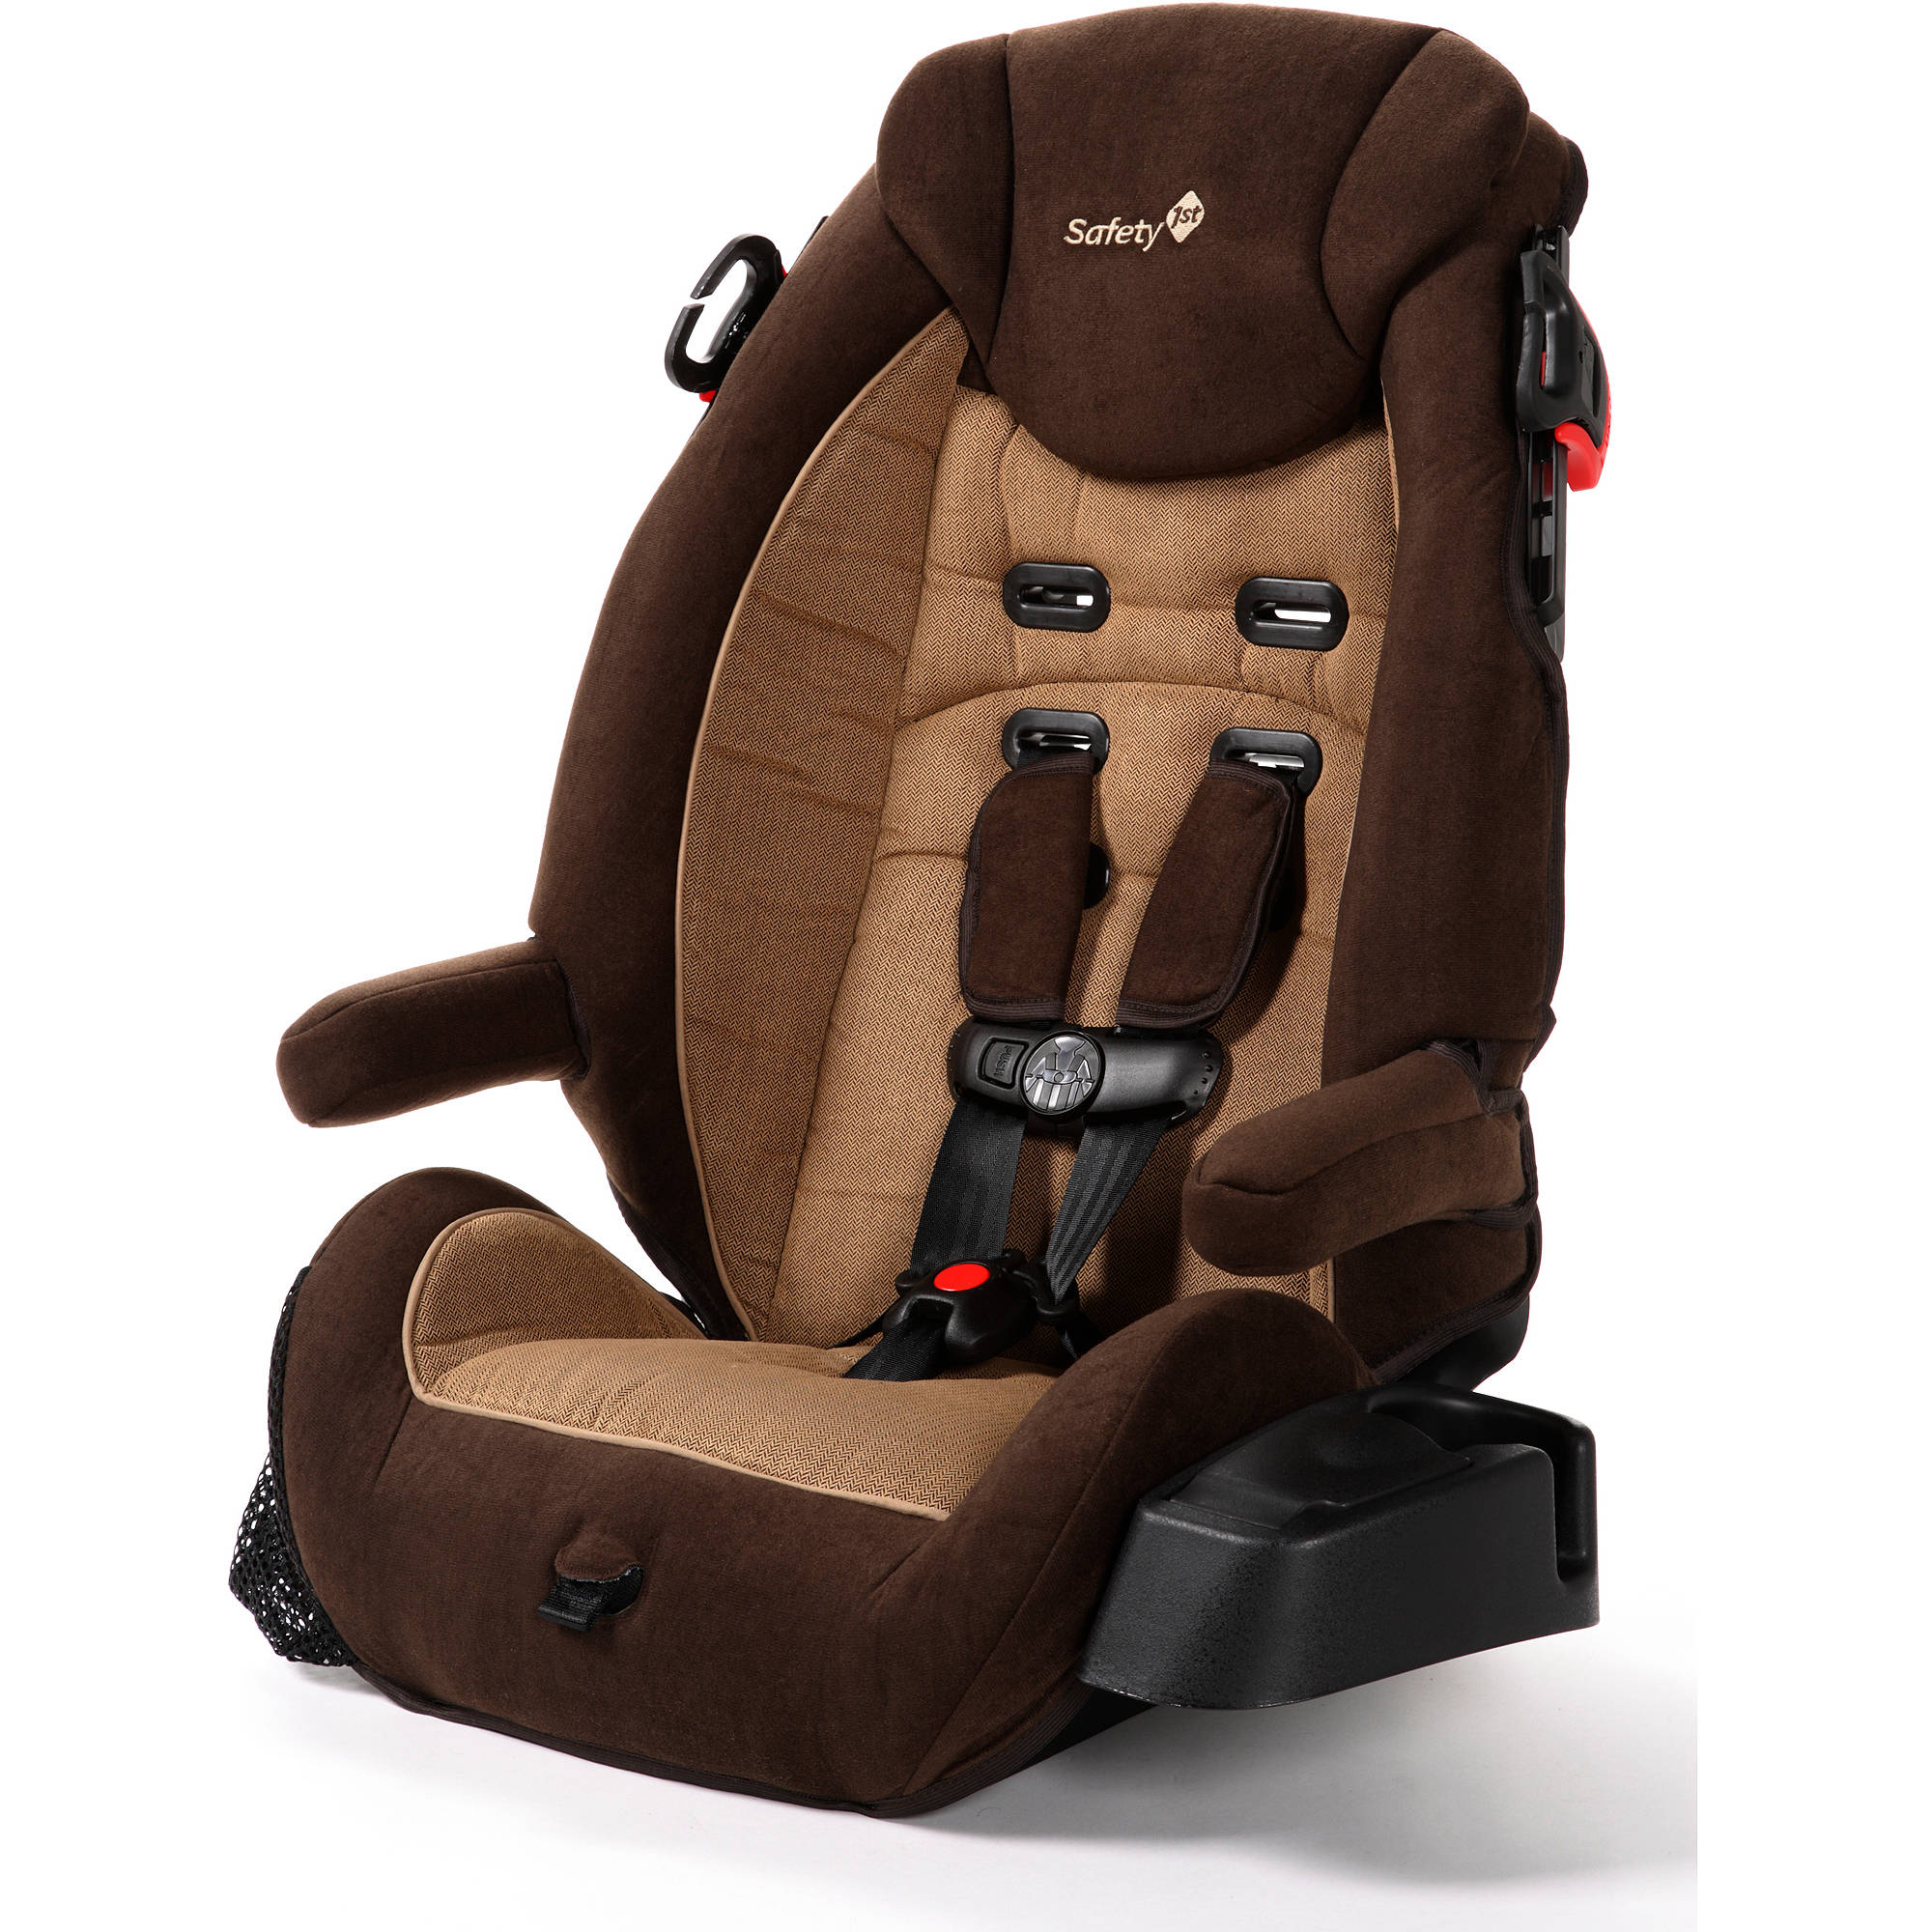 safety 1st vantage booster car seat tyler 884392549022 ebay. Black Bedroom Furniture Sets. Home Design Ideas